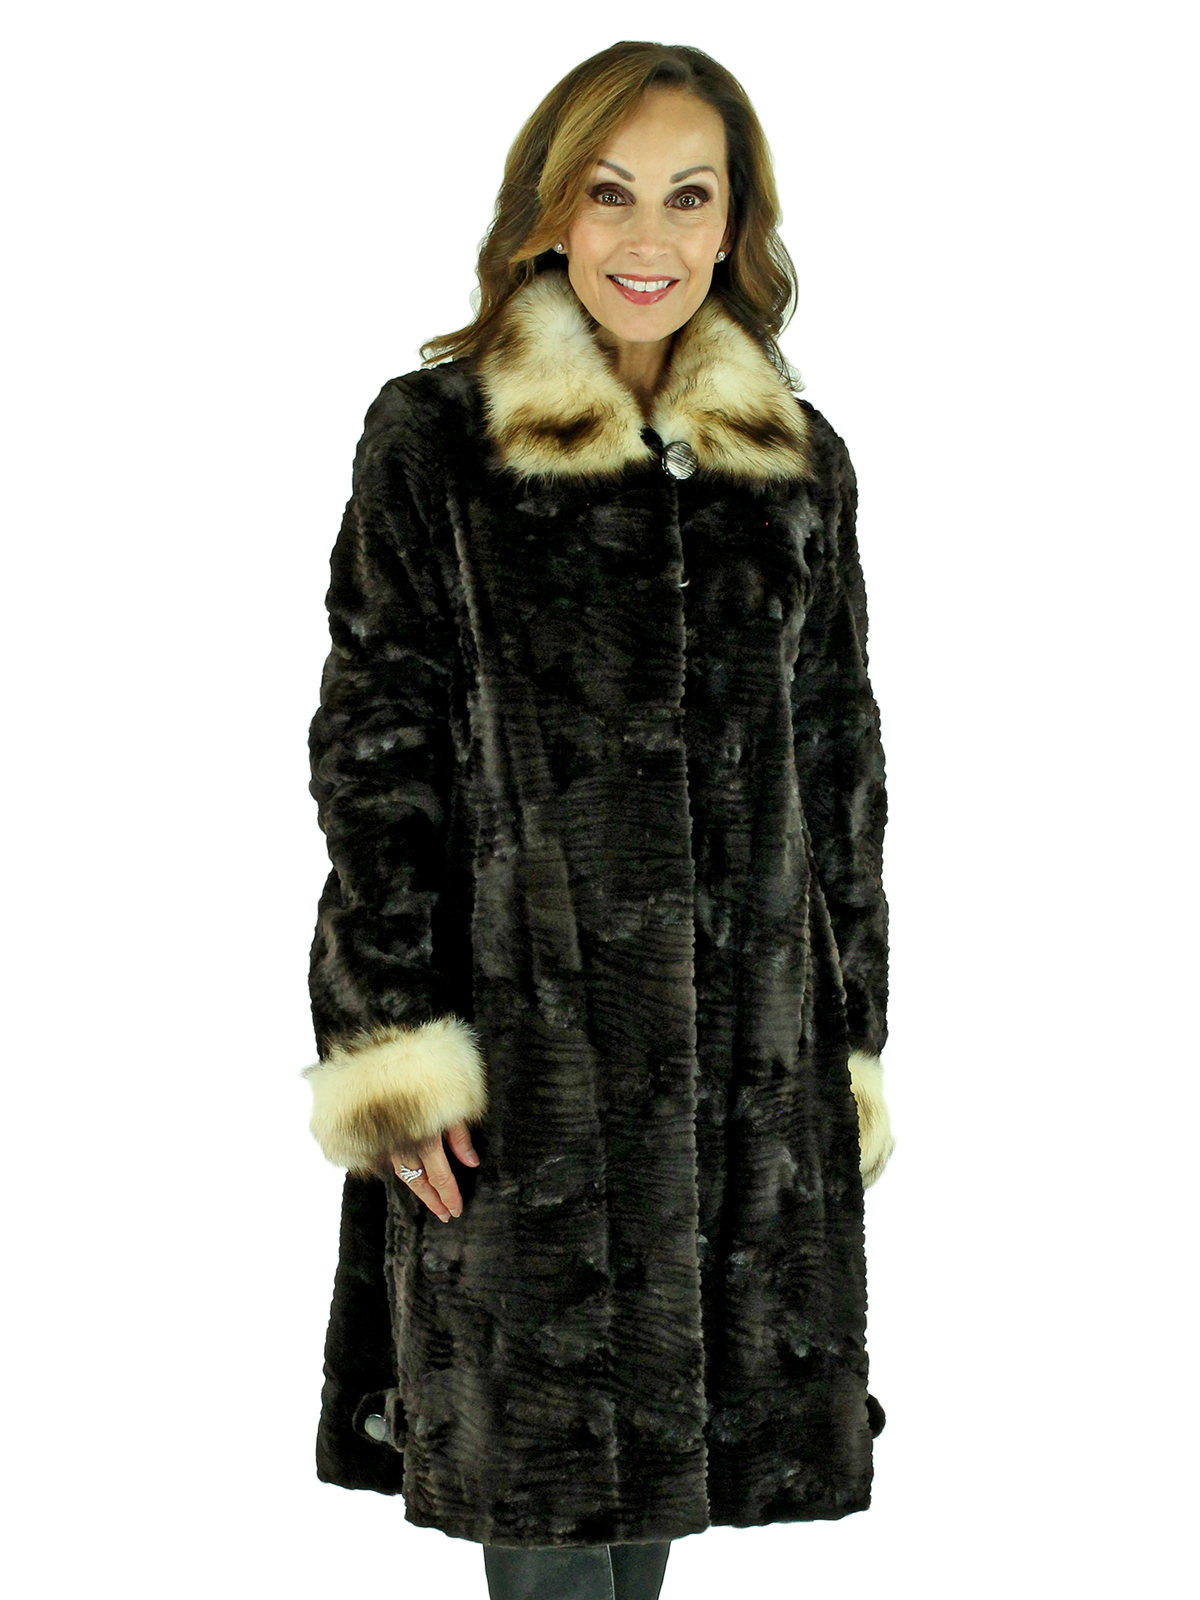 Woman's Dark Brown Sheared Mink Fur 3/4 Coat with Fitch Collar and Cuffs